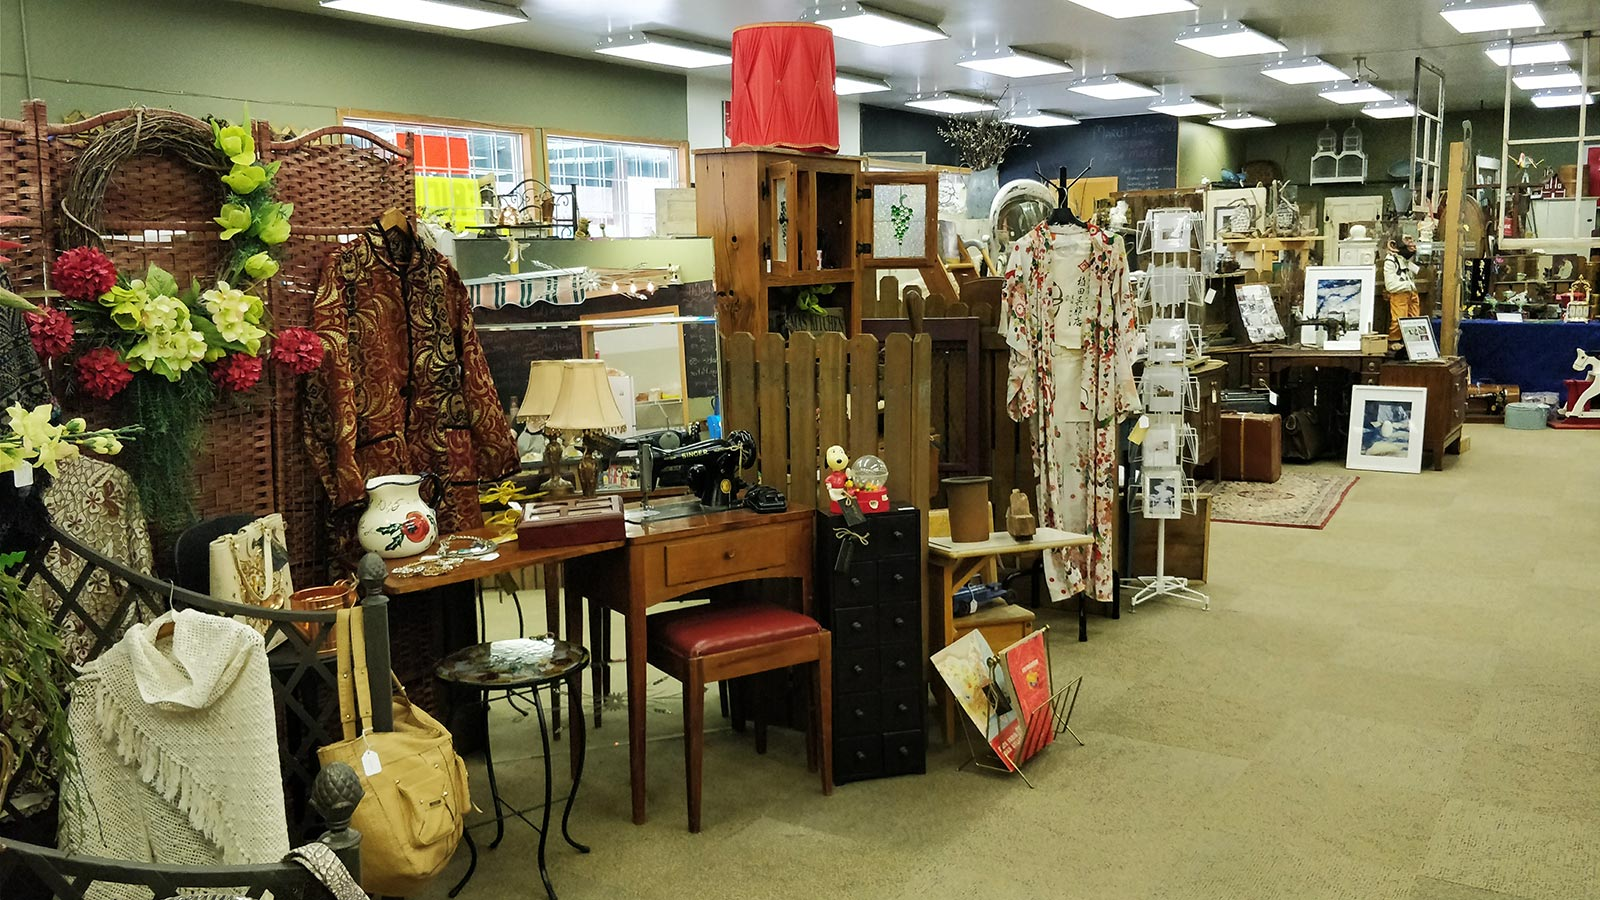 Market Junction Things for Sale